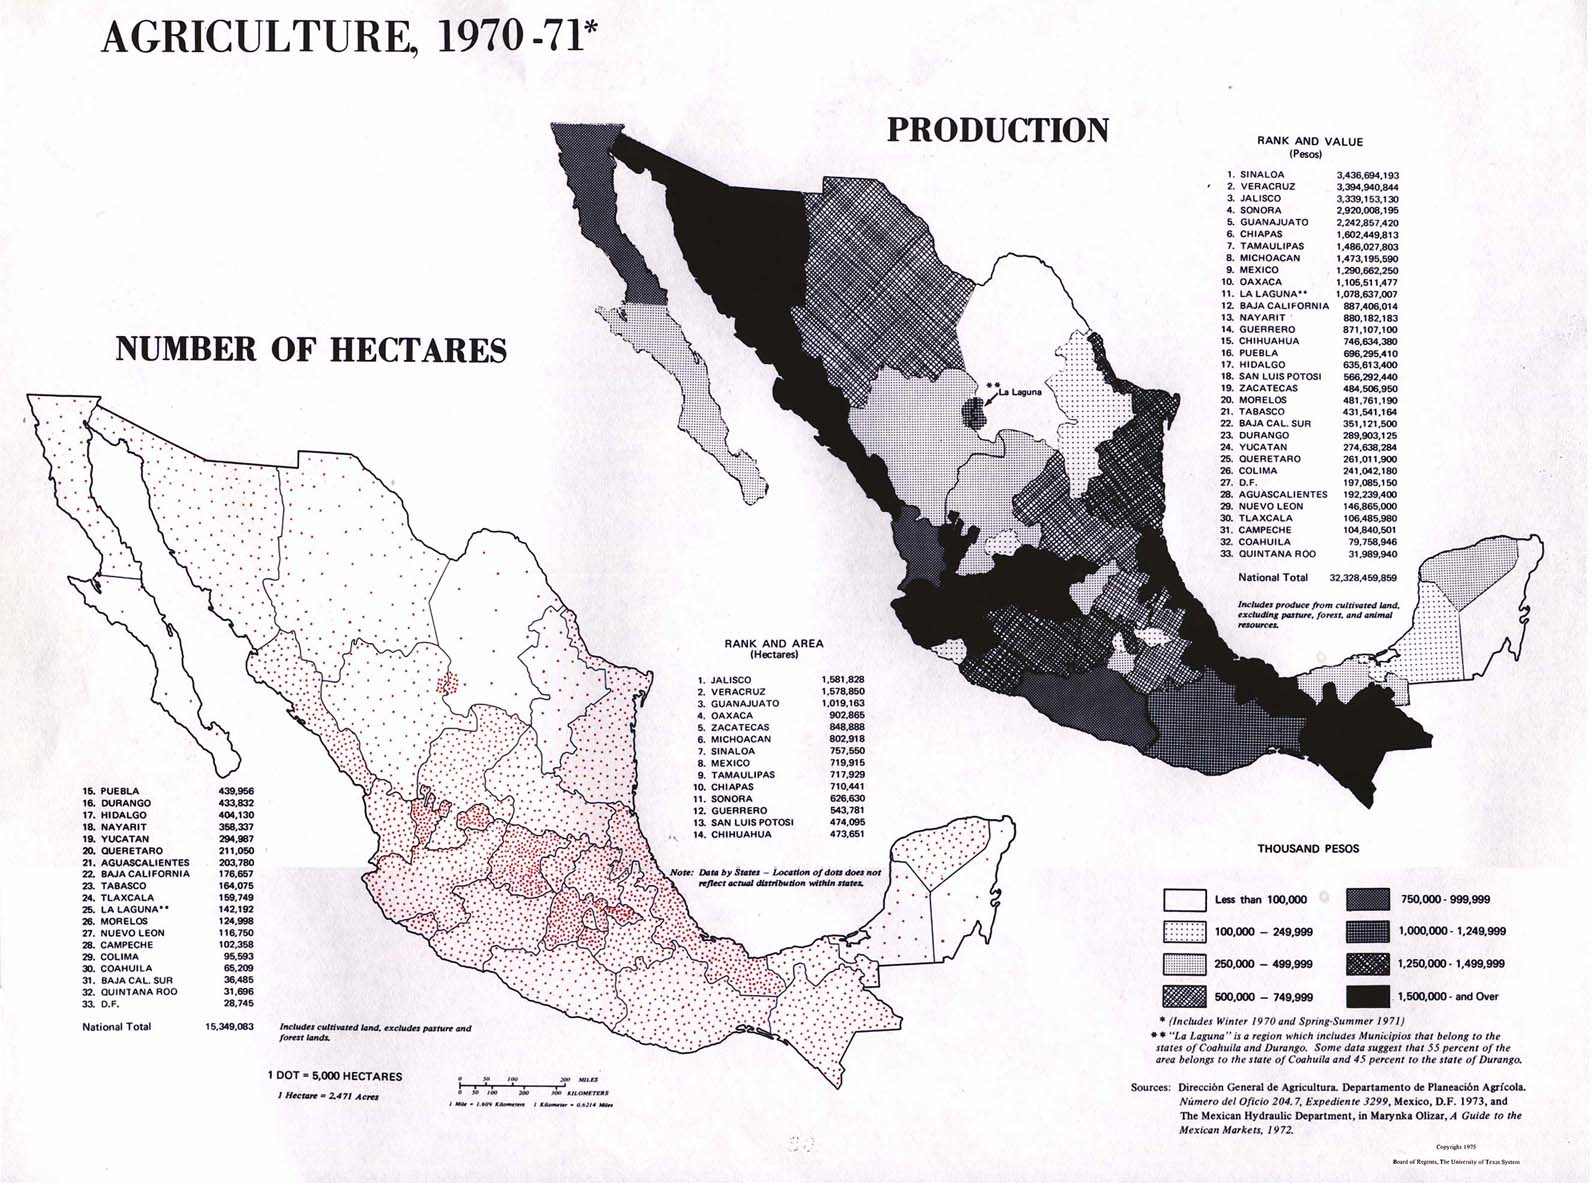 Agriculture in Mexico 1970-71